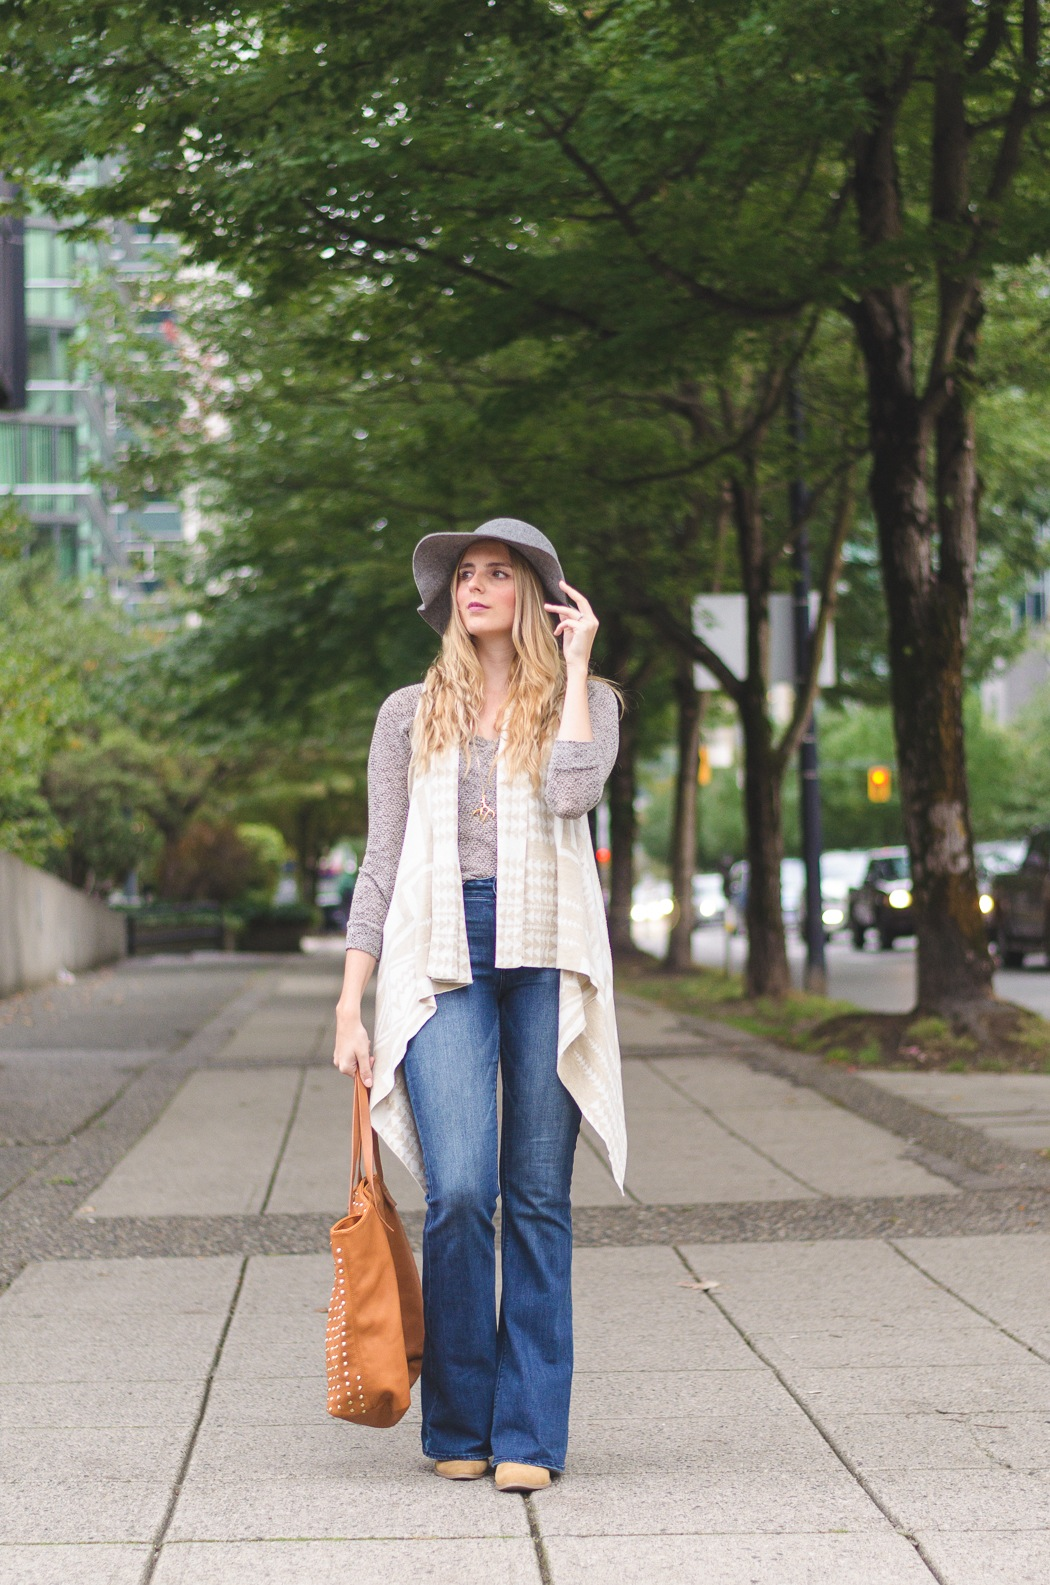 the urban umbrella style blog, vancouver style blog, vancouver fashion blog, vancouver lifestyle blog, vancouver health blog, vancouver fitness blog, vancouver travel blog, canadian faashion blog, canadian style blog, canadian lifestyle blog, canadian health blog, canadian fitness blog, canadian travel blog, bree aylwin, how to rock the 70s trend, how to wear flared jeans, american eagle boho artist flare jean review, dynamite clothing vest, how to layer stylishly for fall, how to wear a floppy hat, aldo crucia hat, best lifestyle blogs, best fitness blogs, best health blogs, best travel blogs, top fashion blogs, top style blogs, top lifestyle blogs, top fitness blogs, top health blogs, top travel blogs